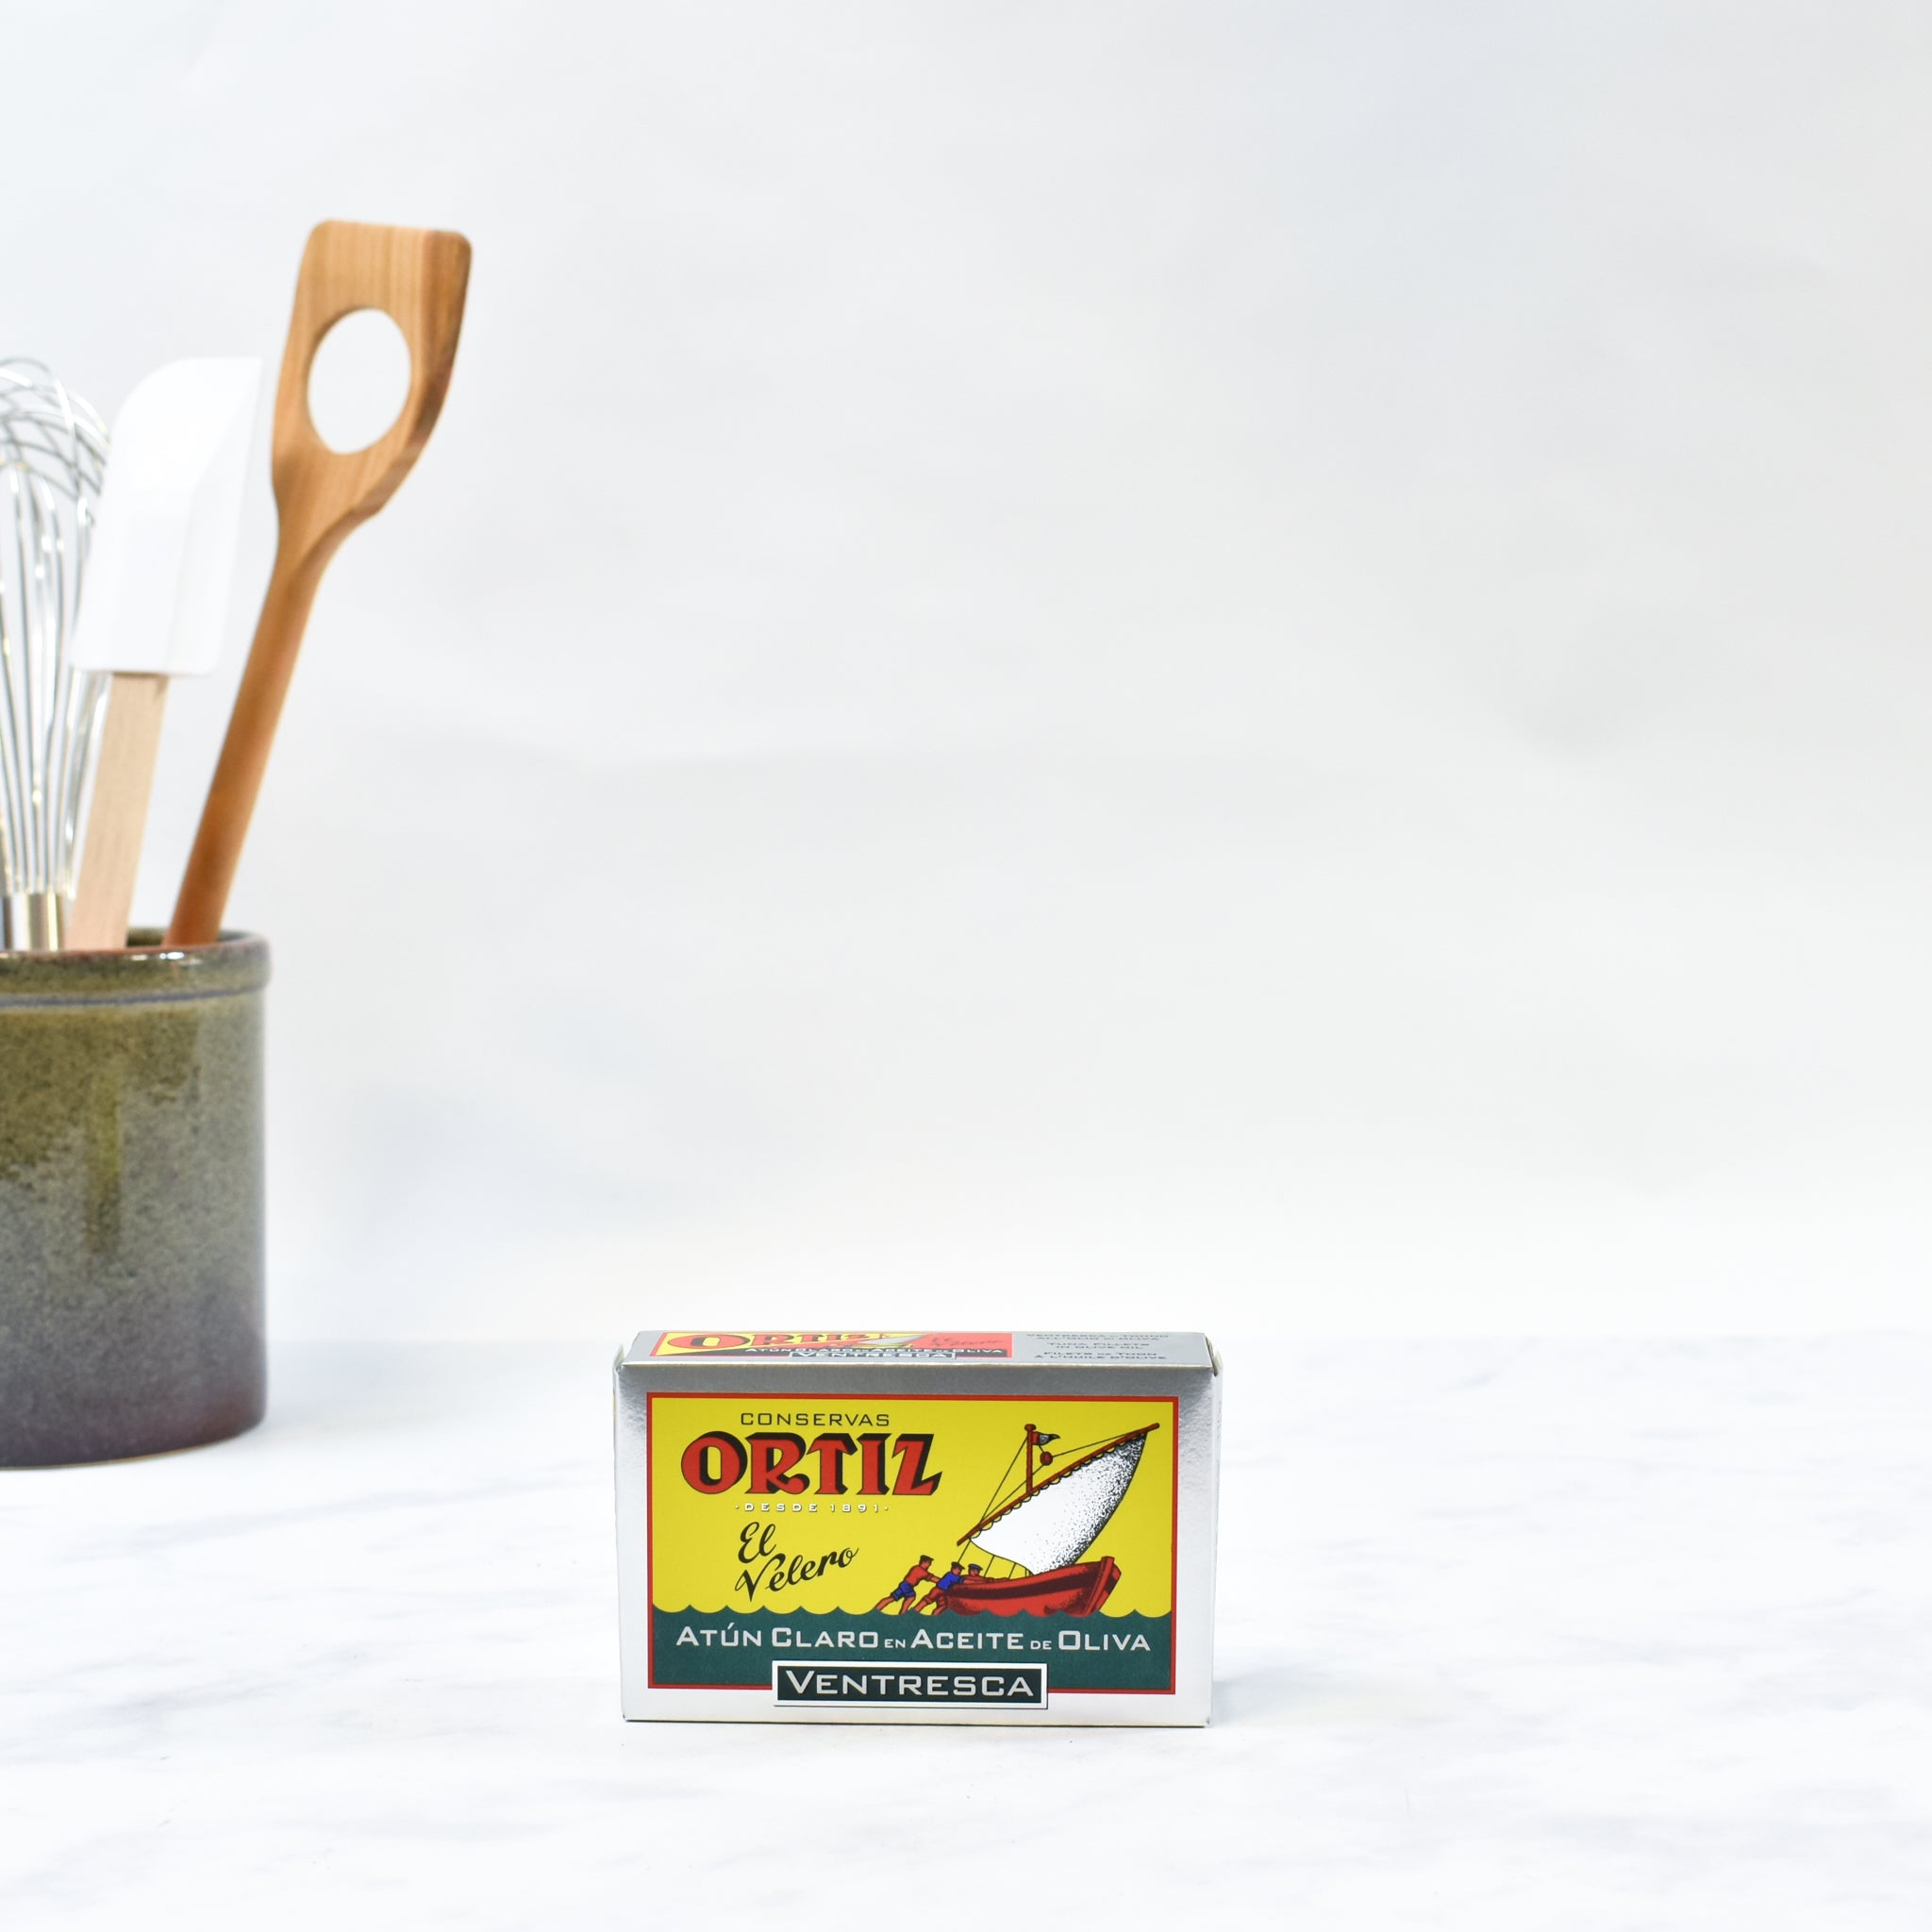 Ortiz Atun Claro Belly In Olive Oil - Ventresca 110g Ingredients Seaweed Squid Ink Fish Spanish Food Lifestyle Packaging Photo